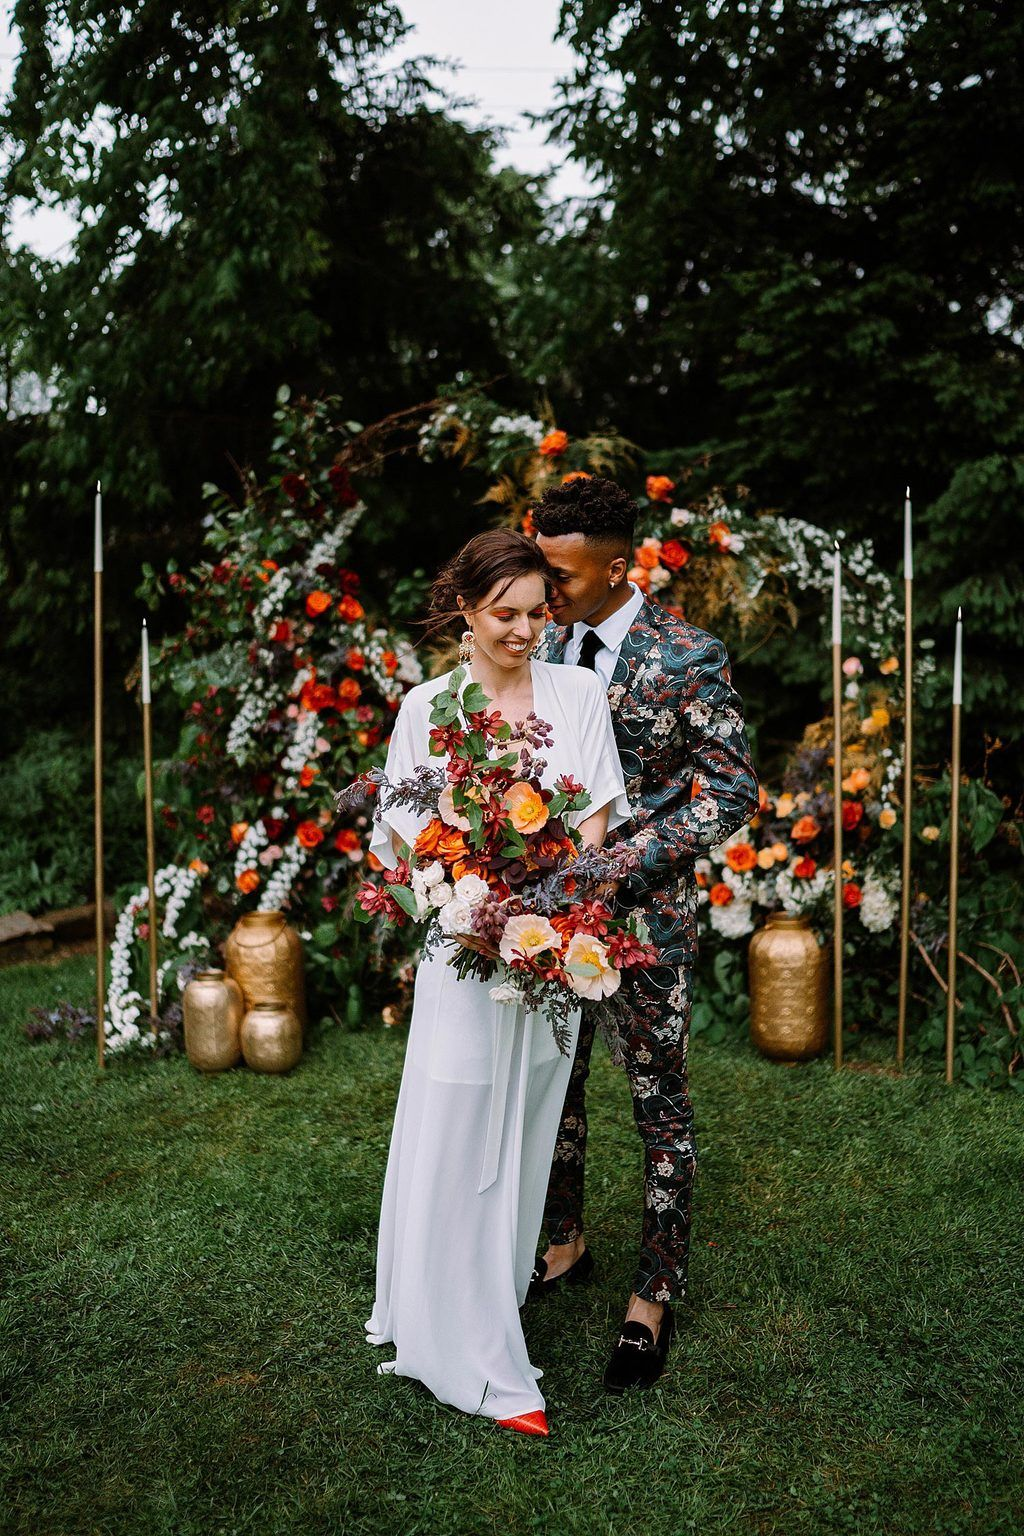 boho wedding inspiration with bride in flutter sleeve wedding dress and groom in floral print suit